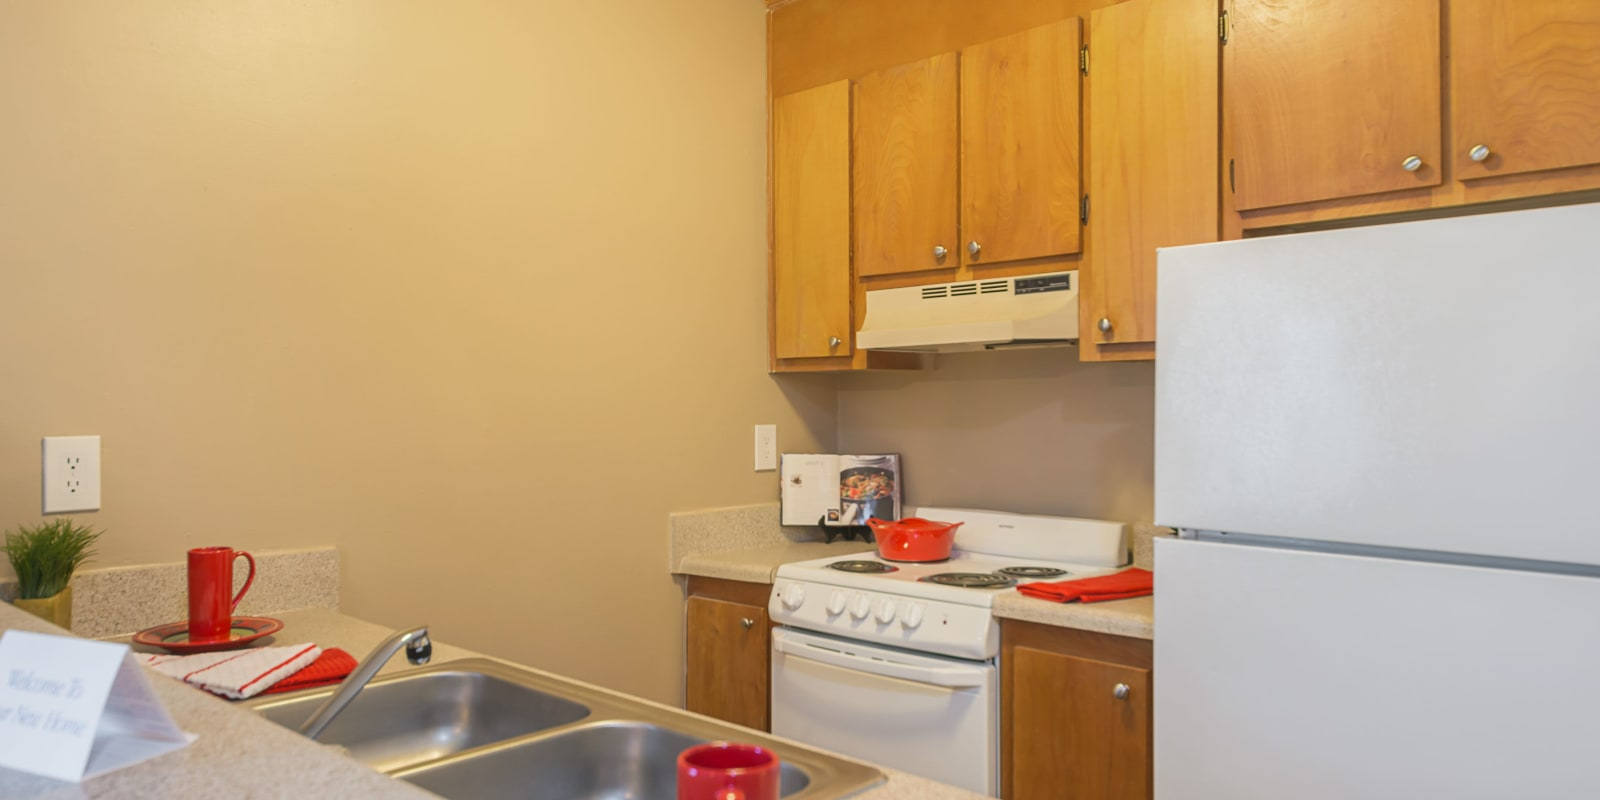 Kitchen with a stainless-steel sink at Lakewood Apartment Homes in Salisbury, North Carolina